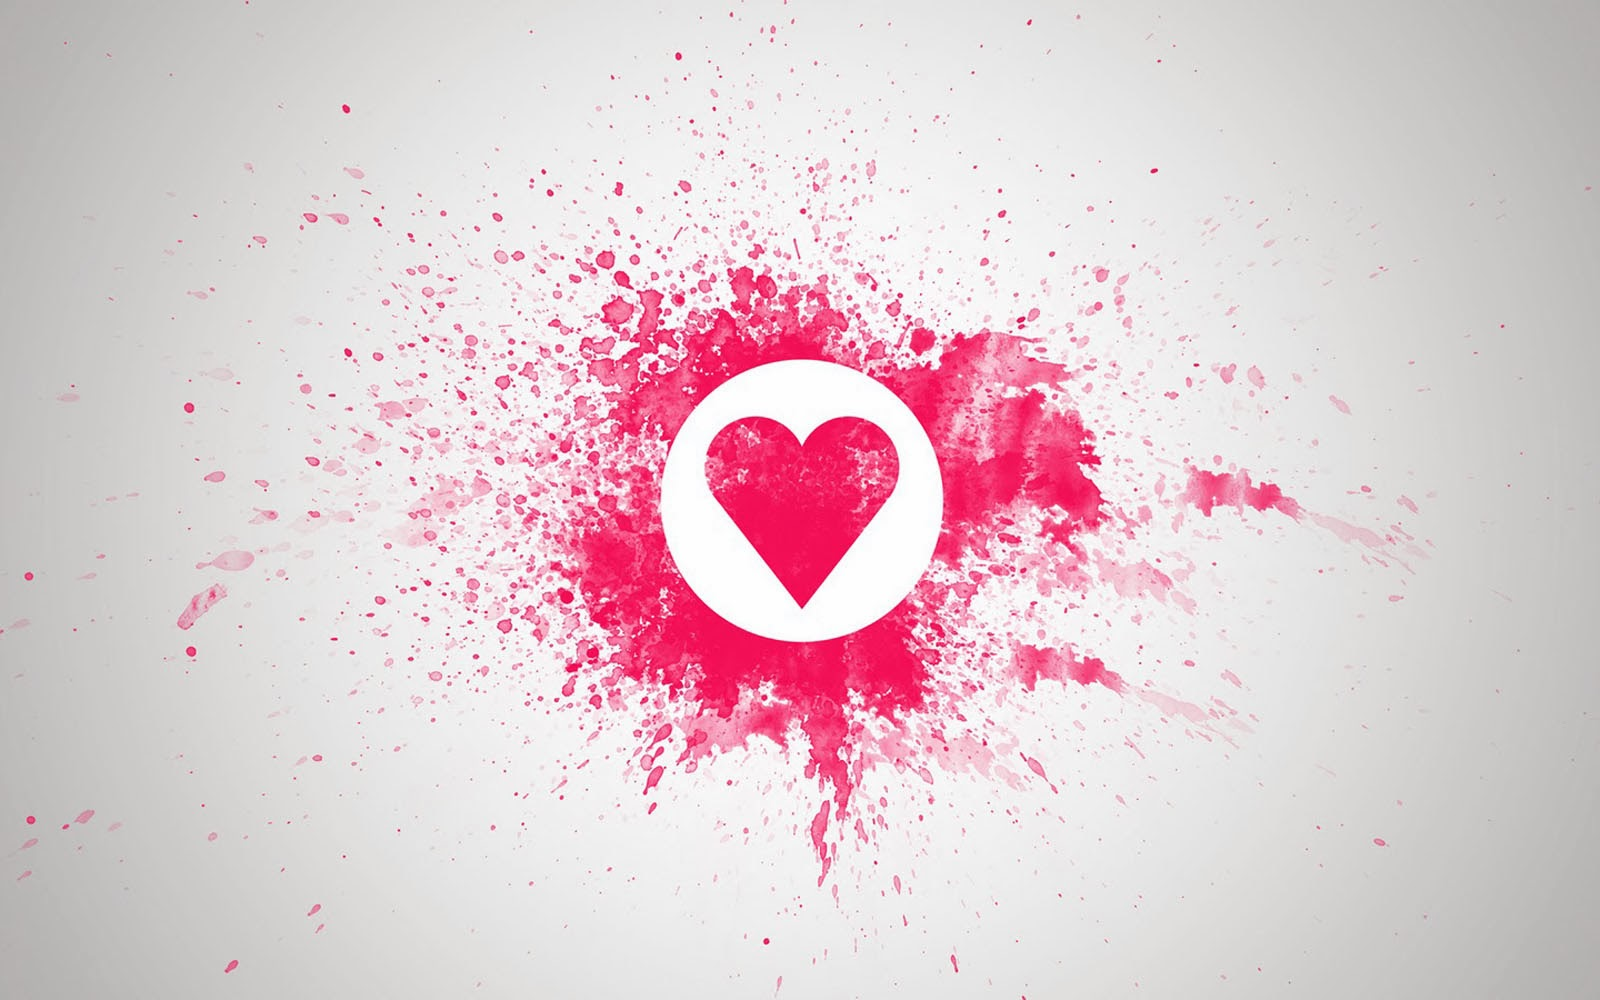 Wallpapers: Simple Heart Wallpapers